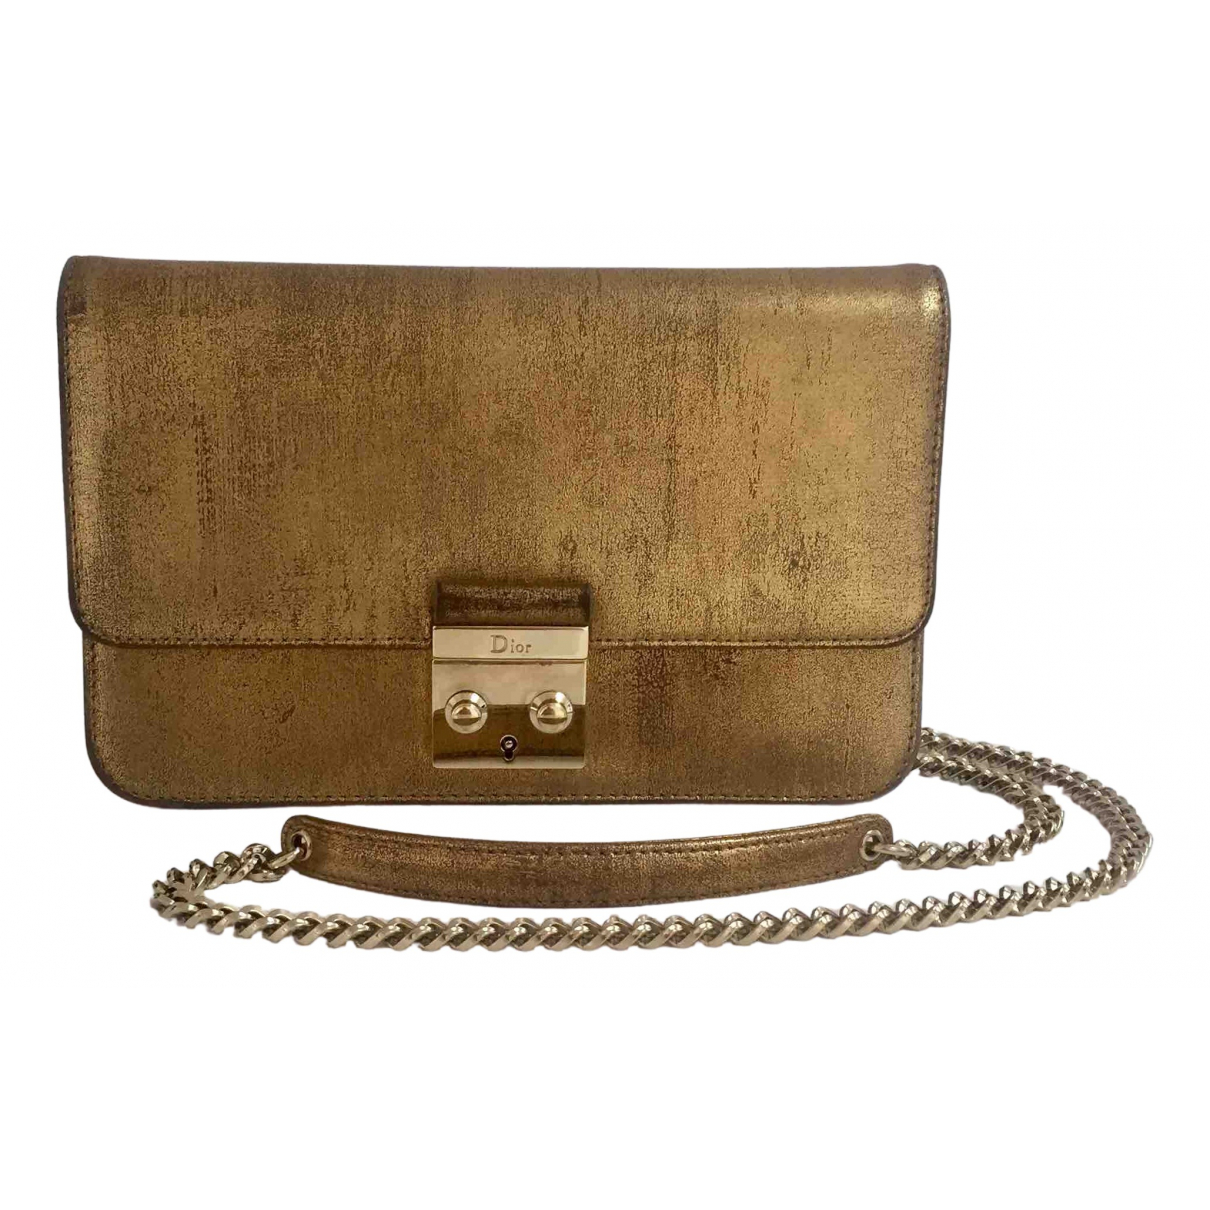 Dior Miss Dior Clutch in  Gold Leder